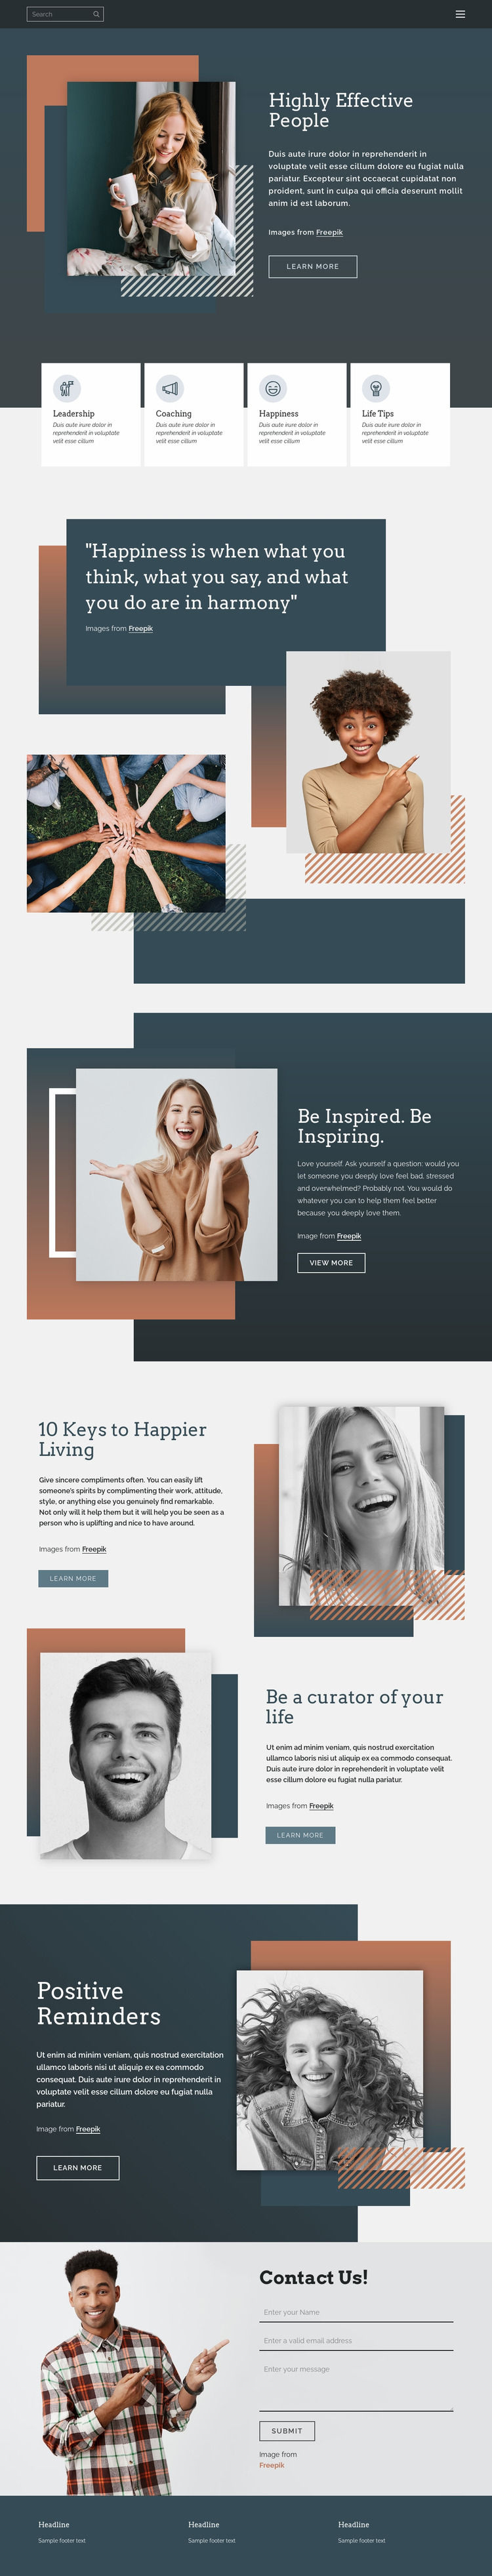 How to be successful in life Html Website Builder